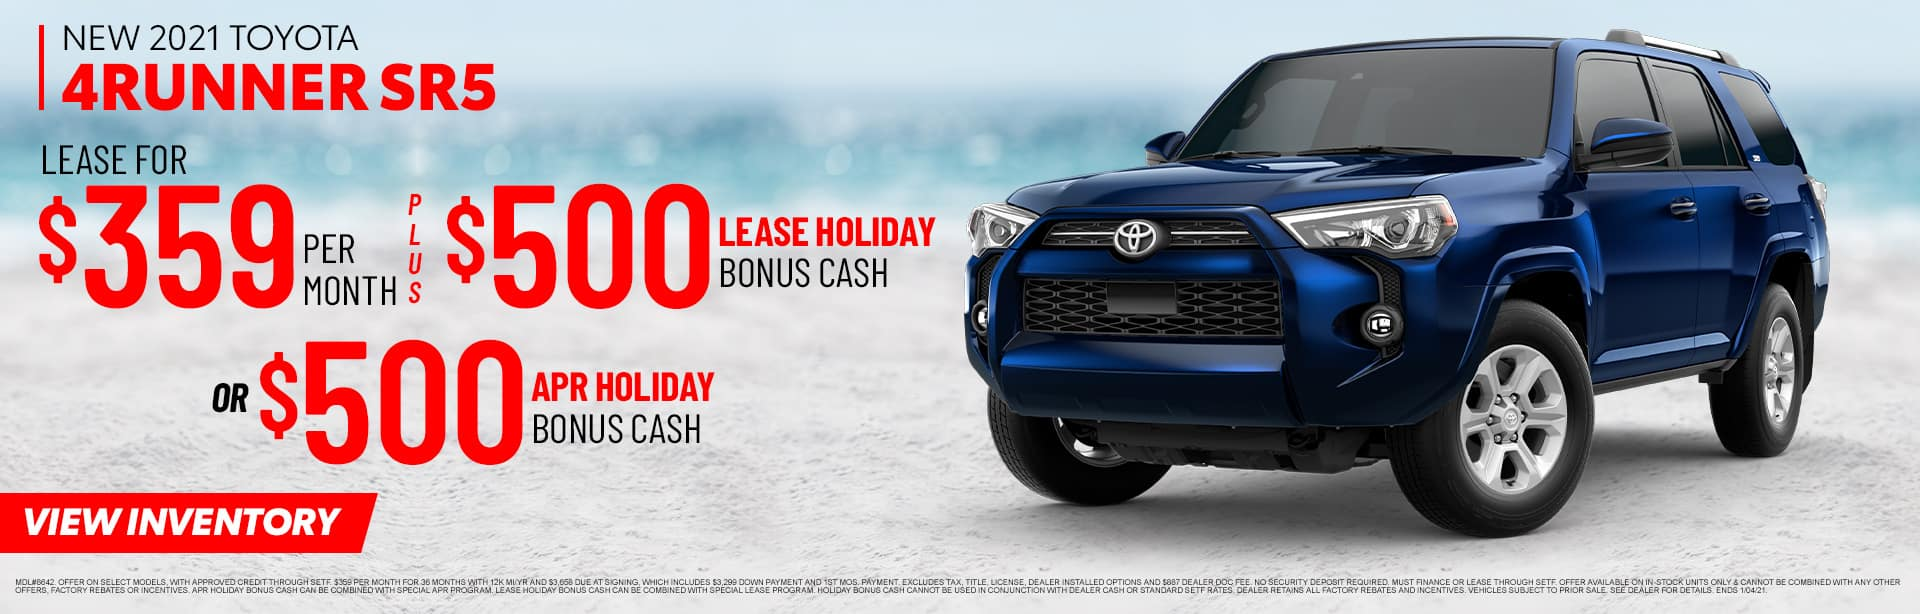 New 2021 Toyota 4Runner SR5 | Sales NOW at Toyota of Fort Walton Beach